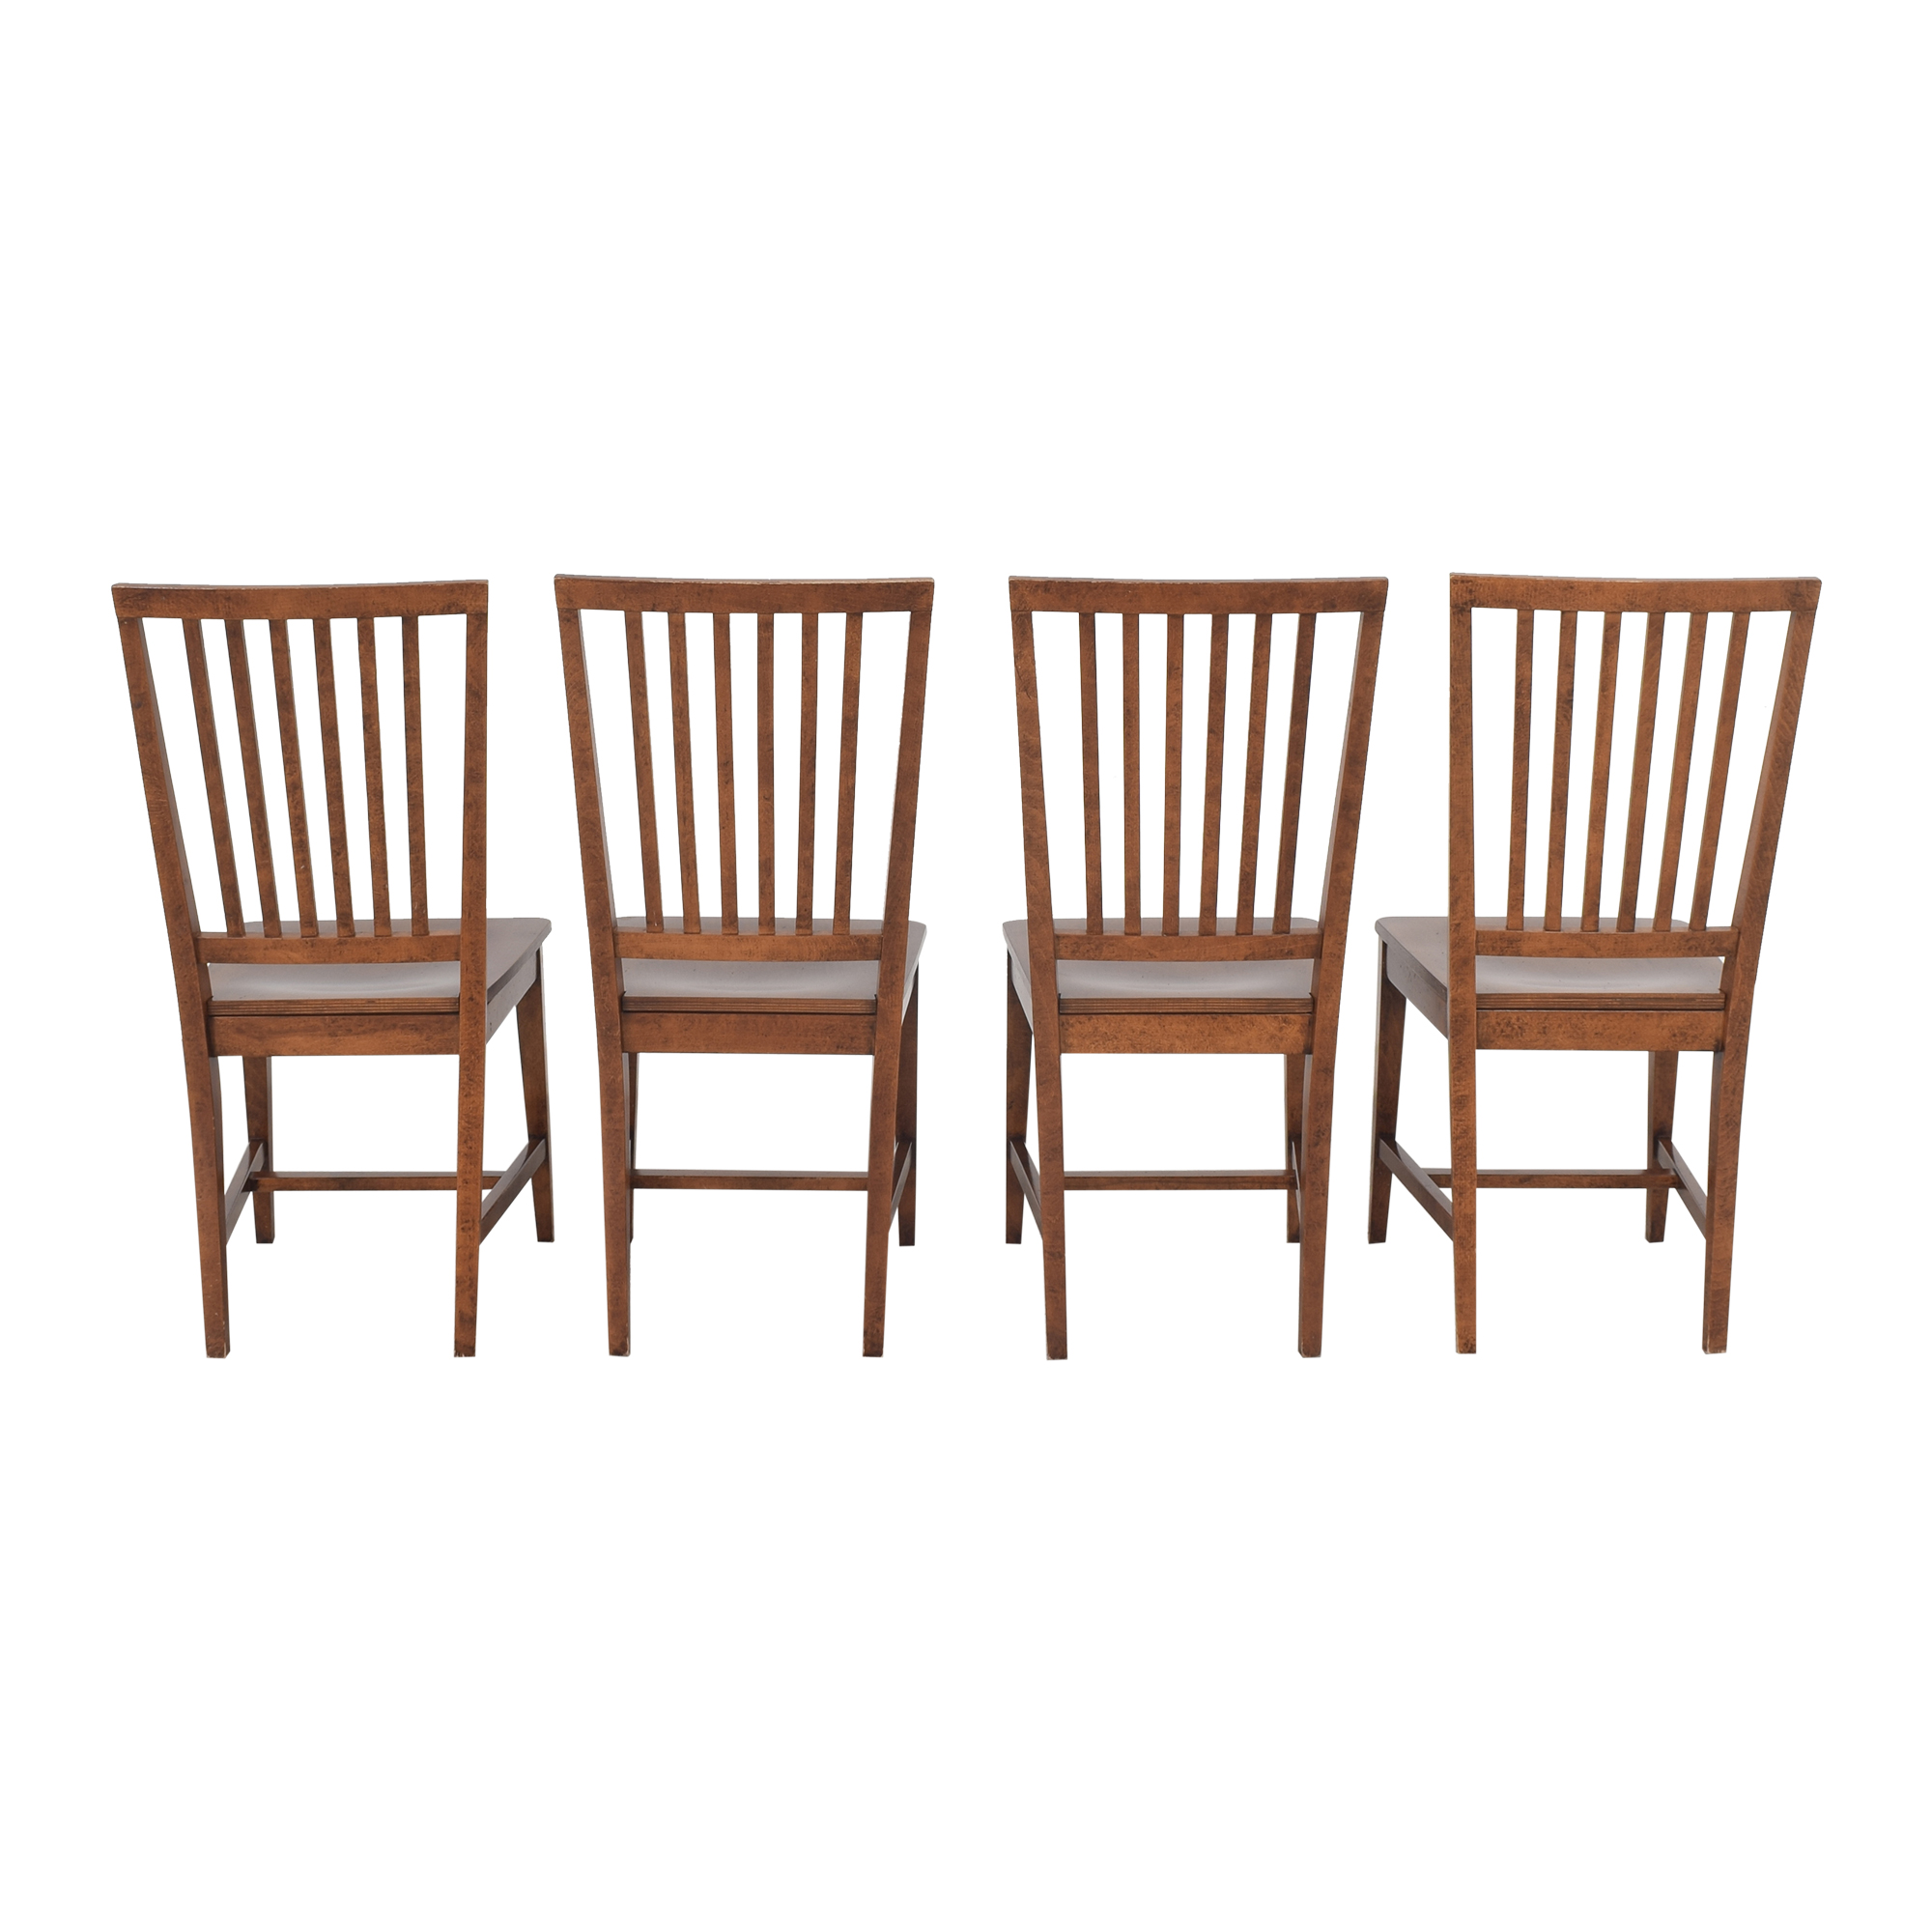 Crate & Barrel Village Nero Noche Dining Chairs / Chairs